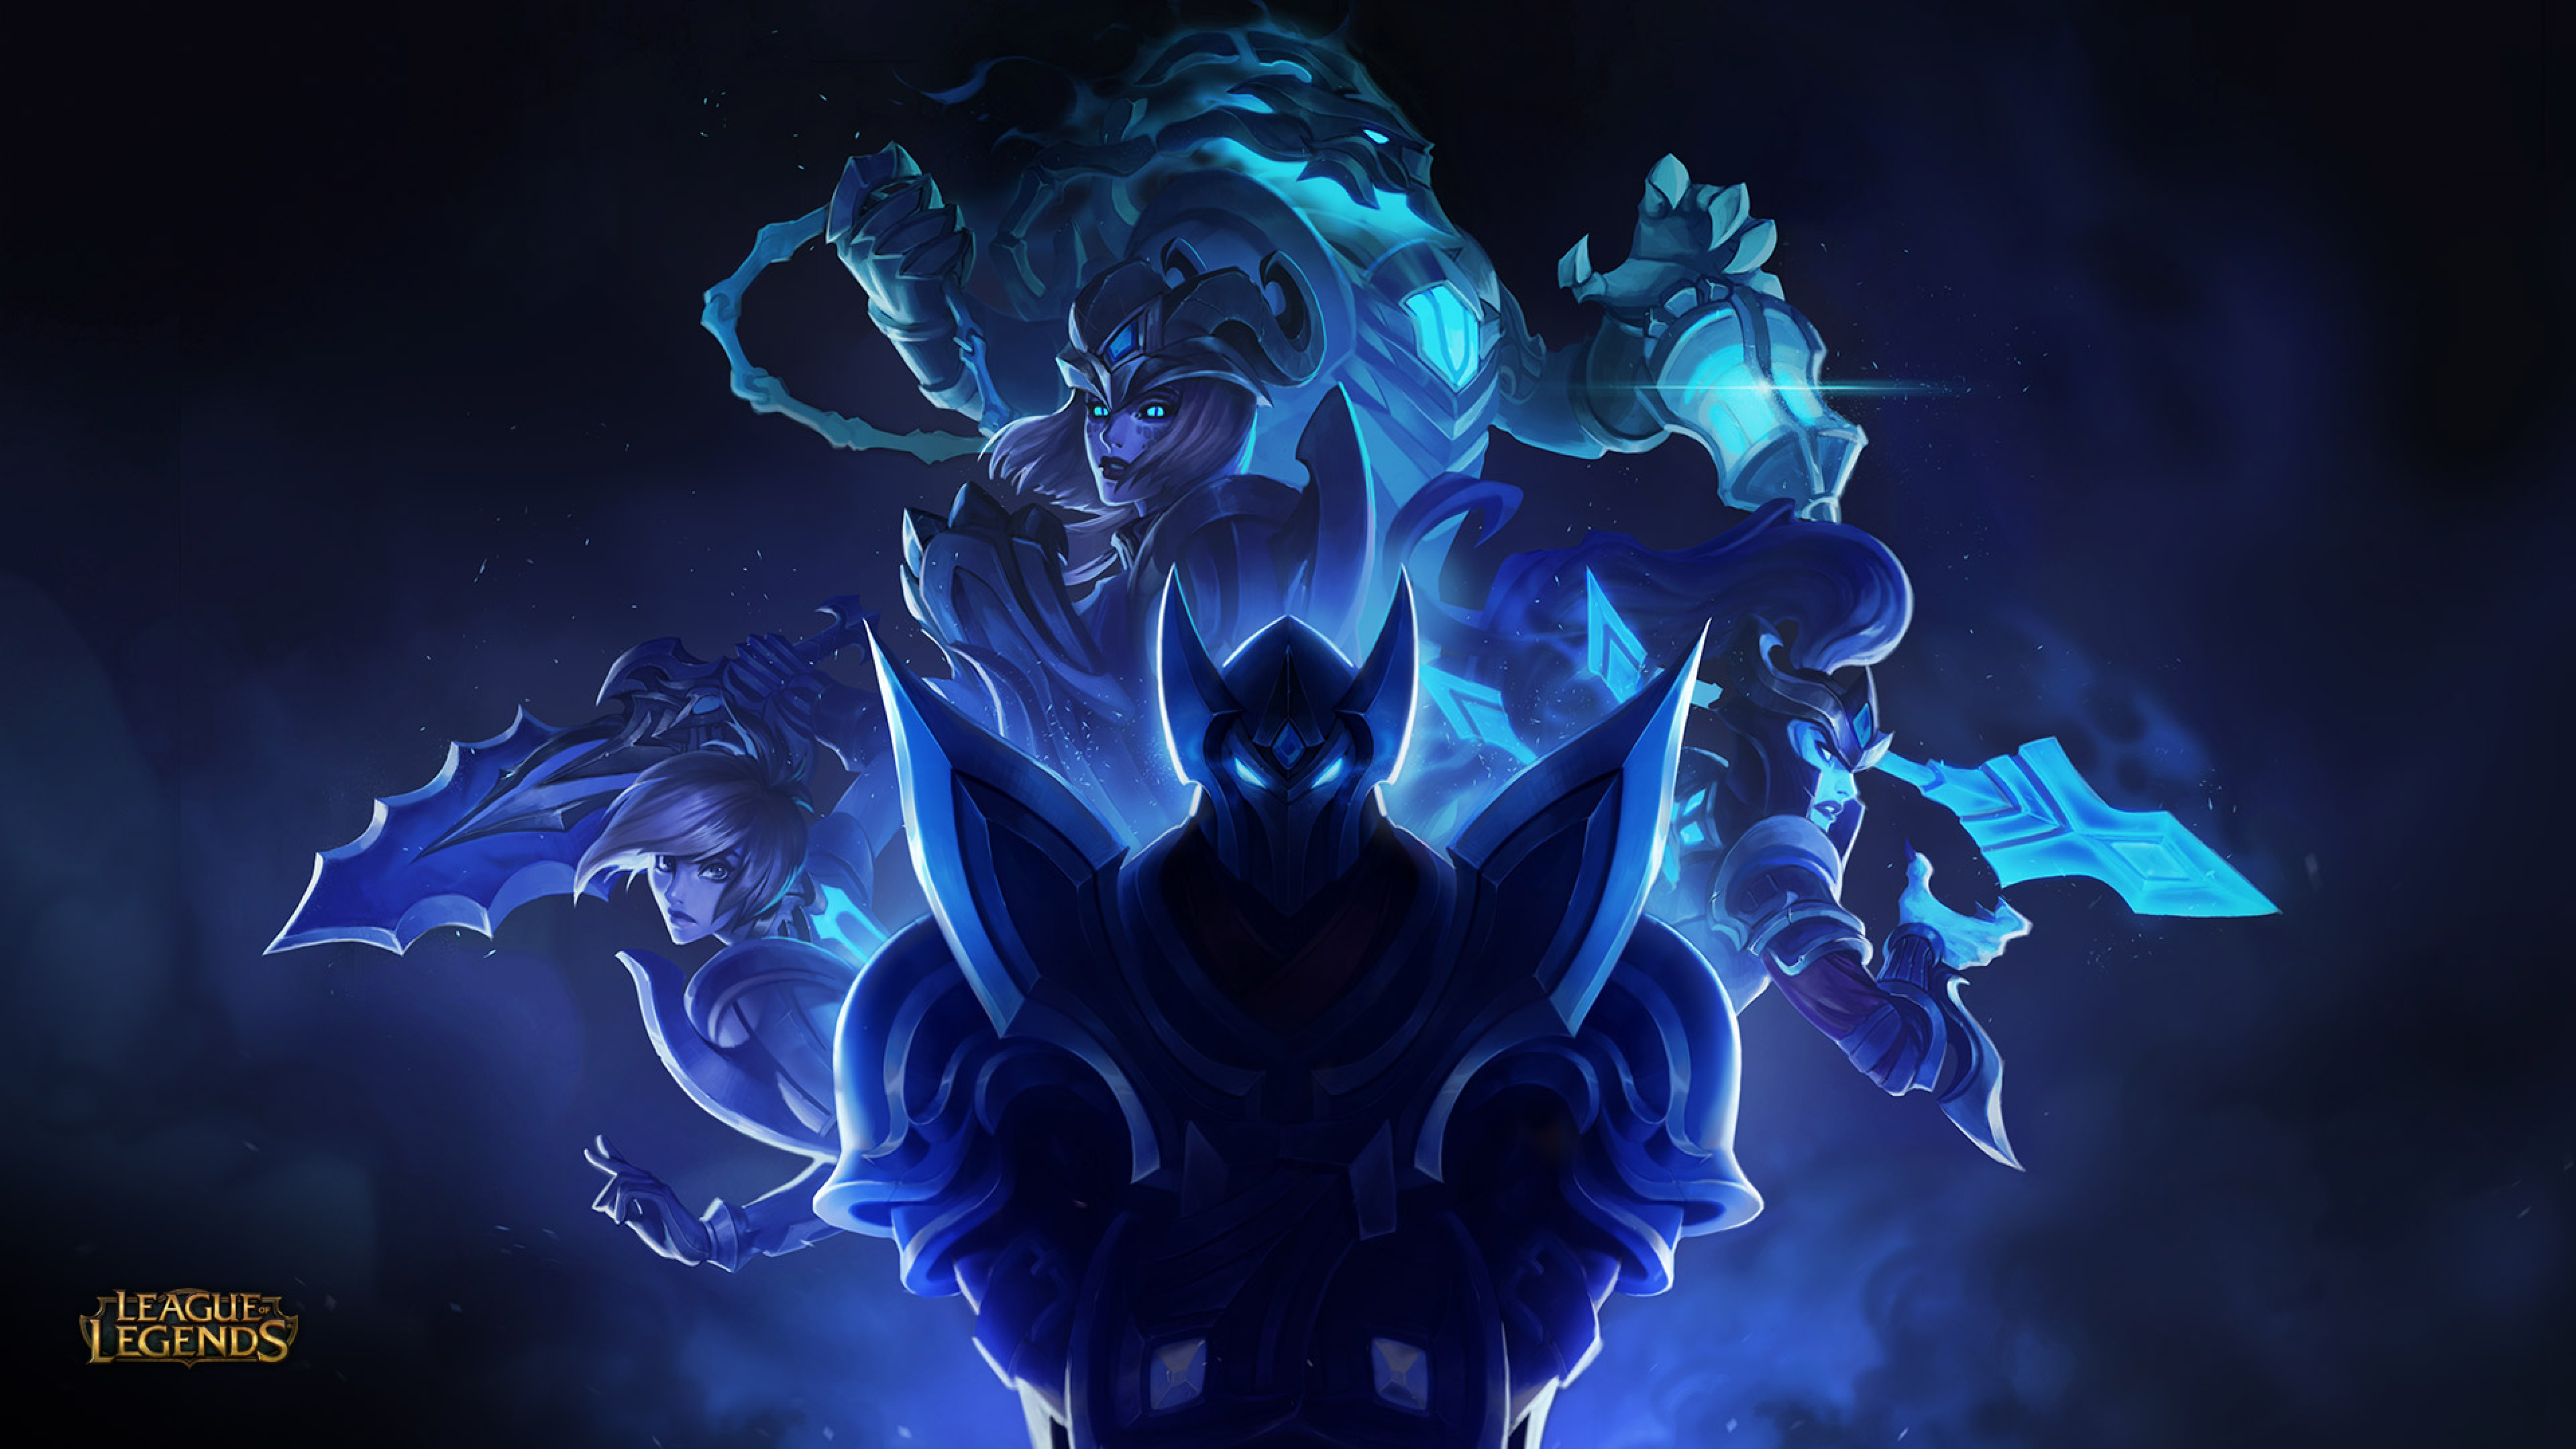 3840x2160 League Of Legends Zed Riven Shyvana And Thresh